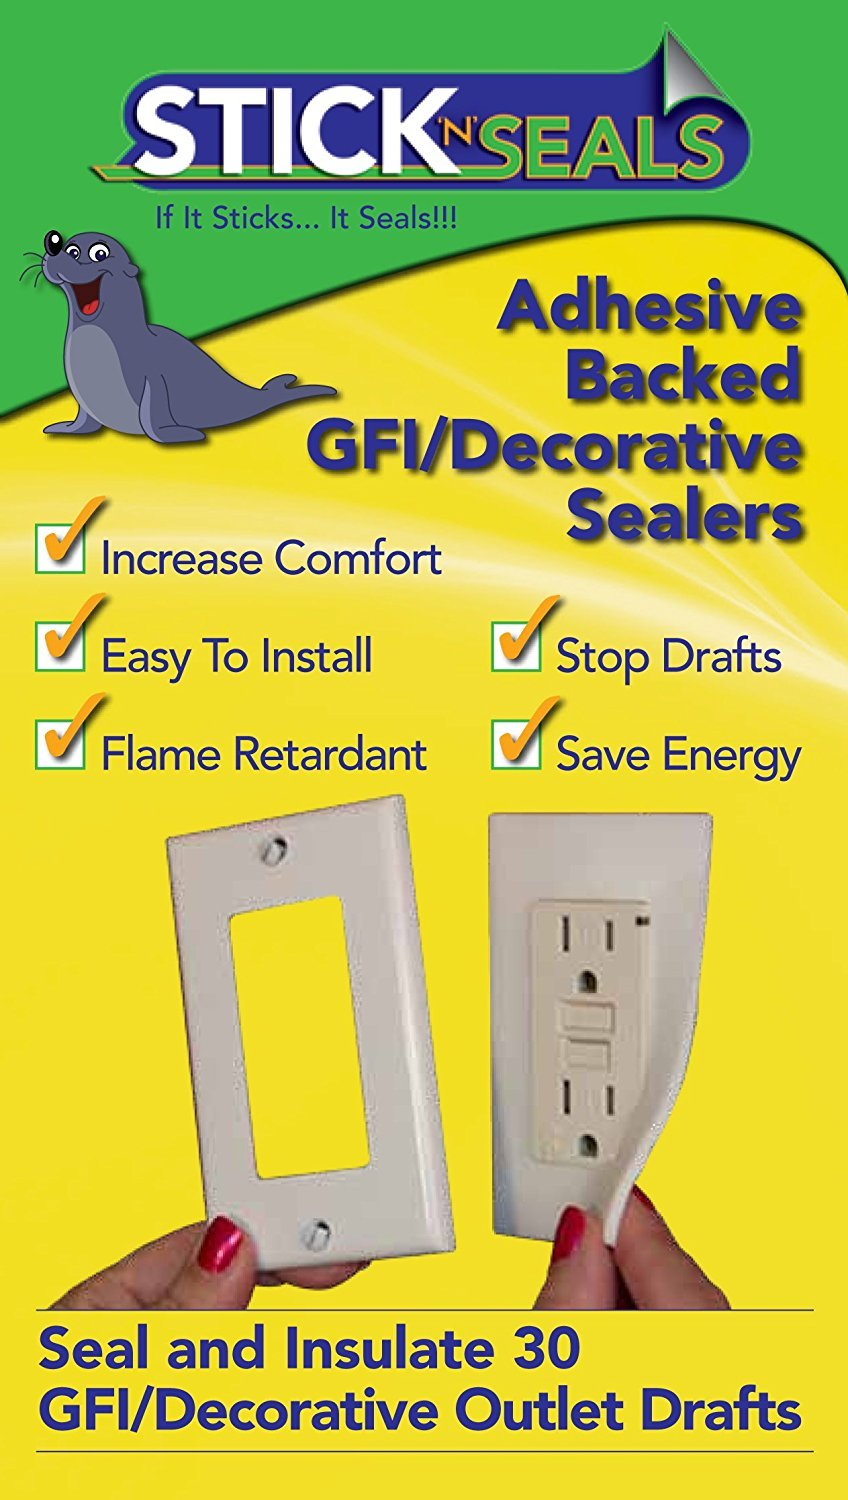 Stick N Seal Adhesive Backed Gfi Decorative Outlet Draft Sealers Removing The Old Gfci Save Energy And Money Pack Of 30 Insulation